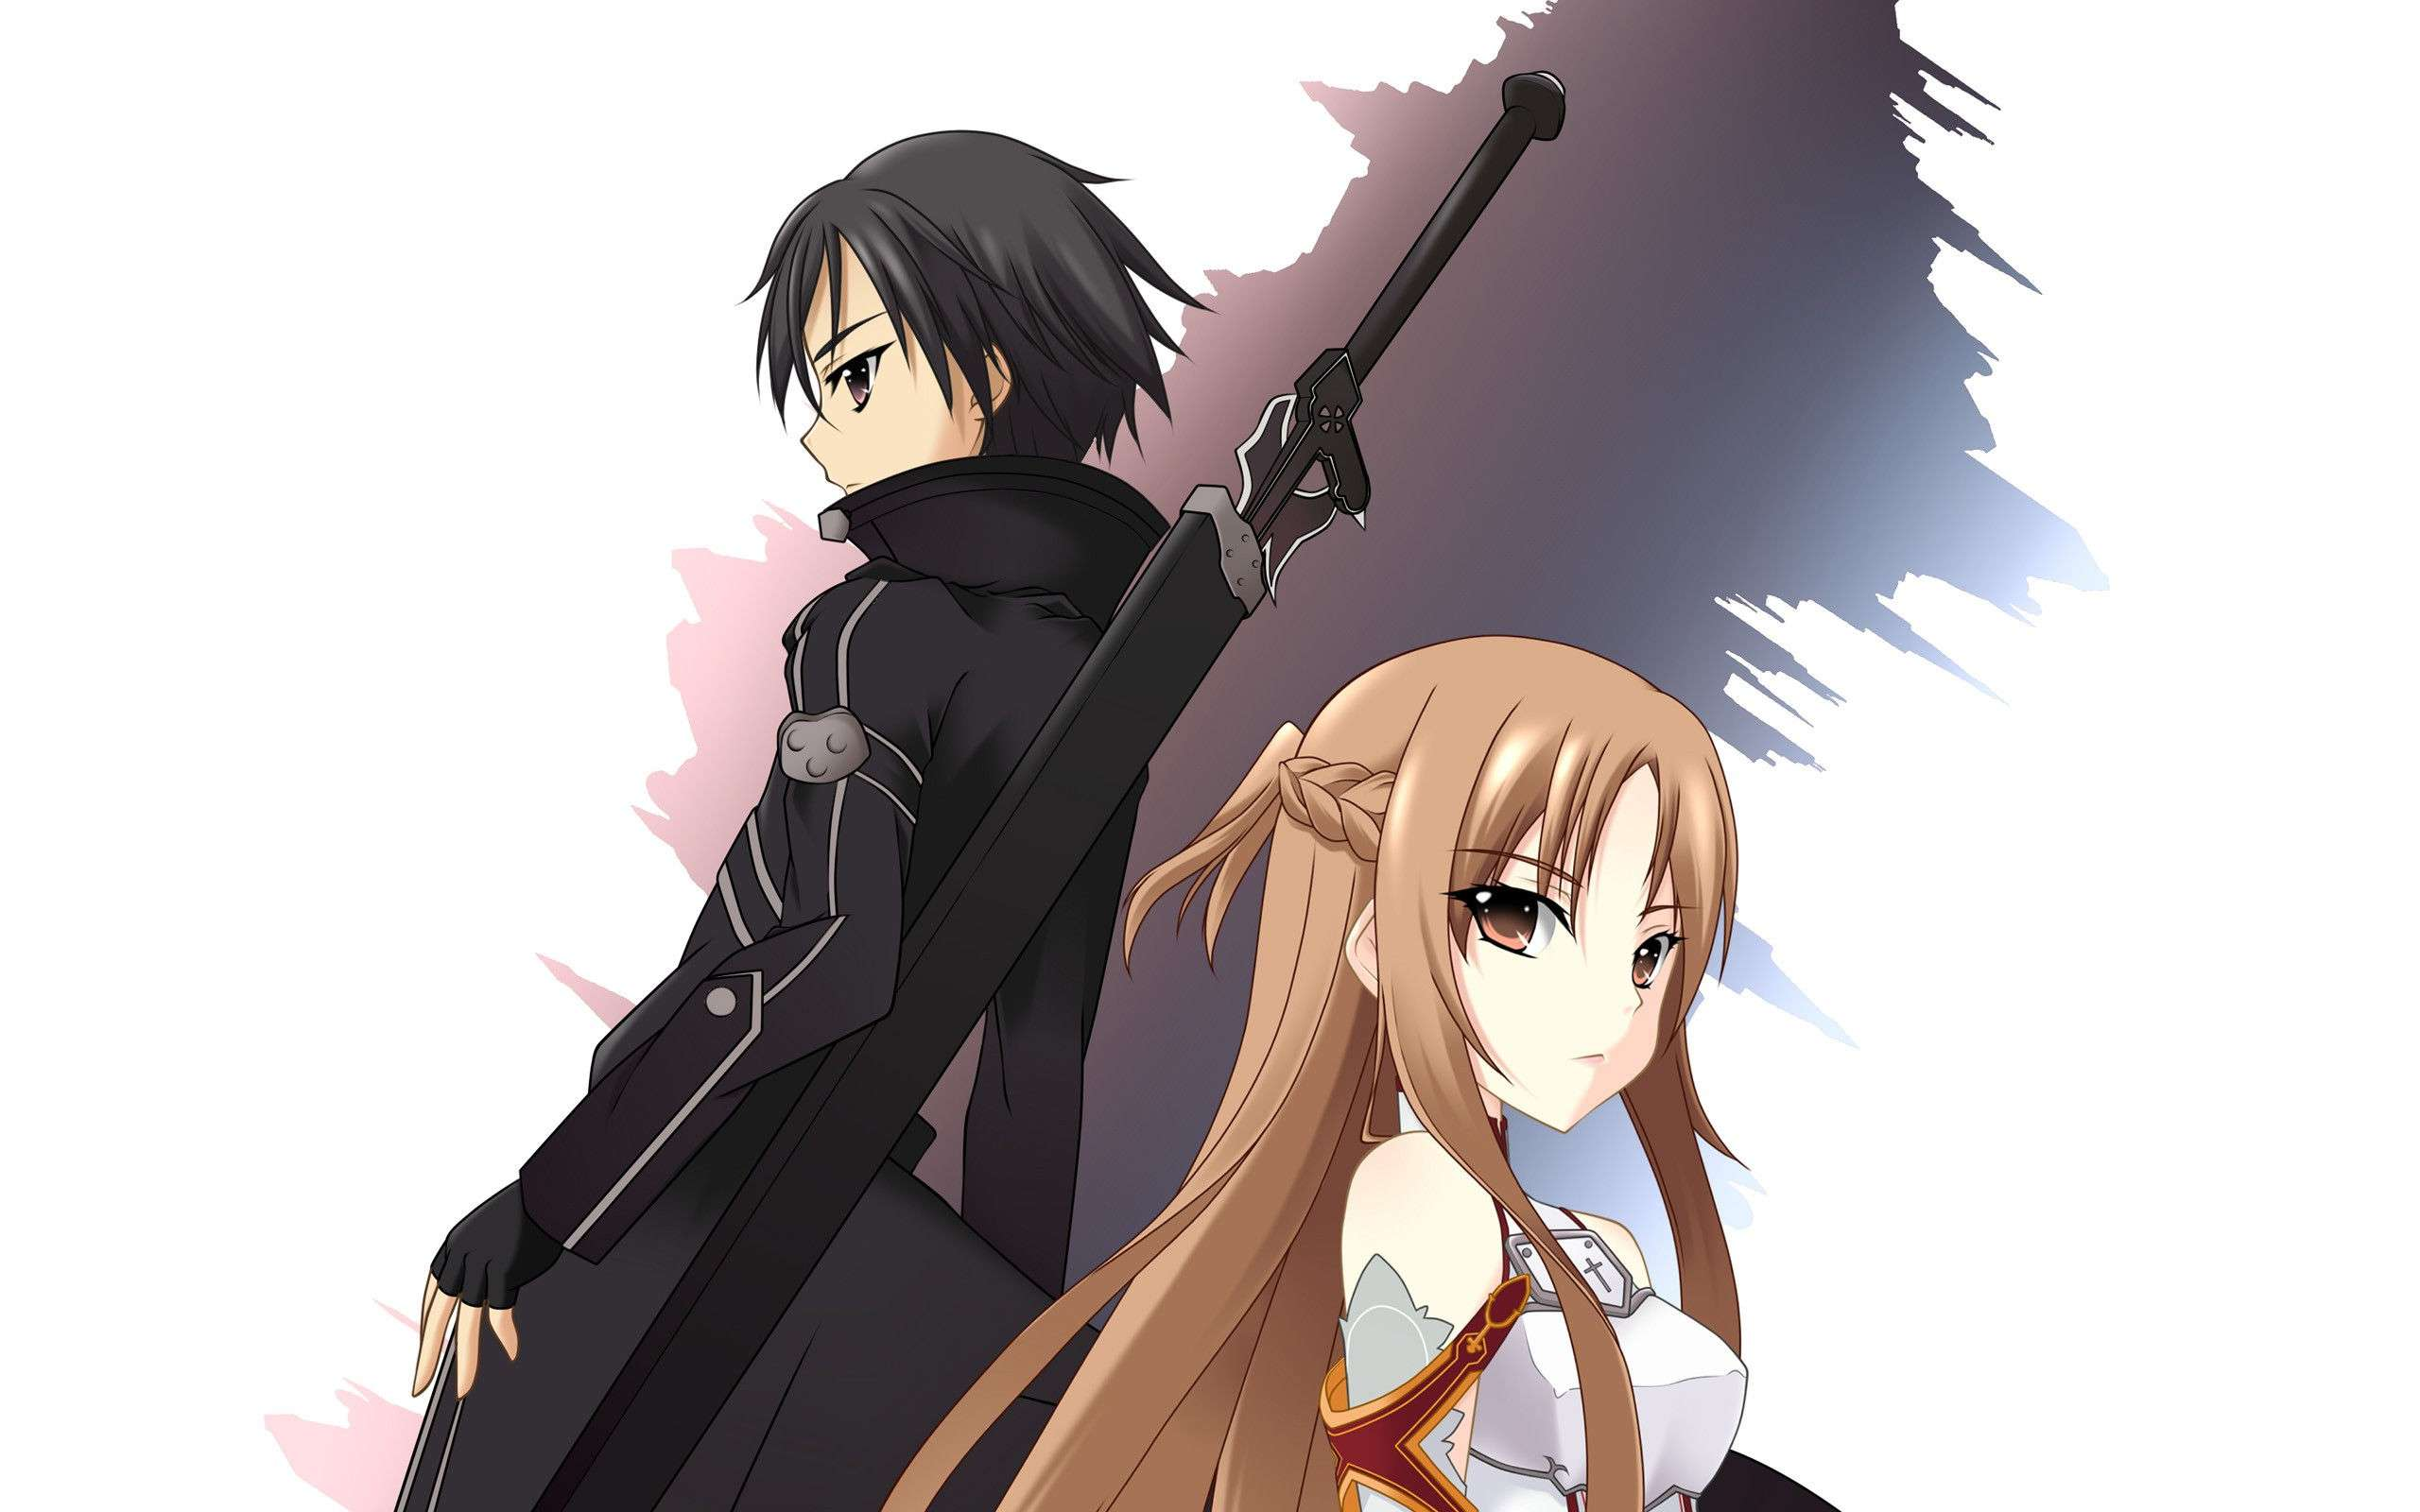 Sword Art Online Anime Wallpaper 023